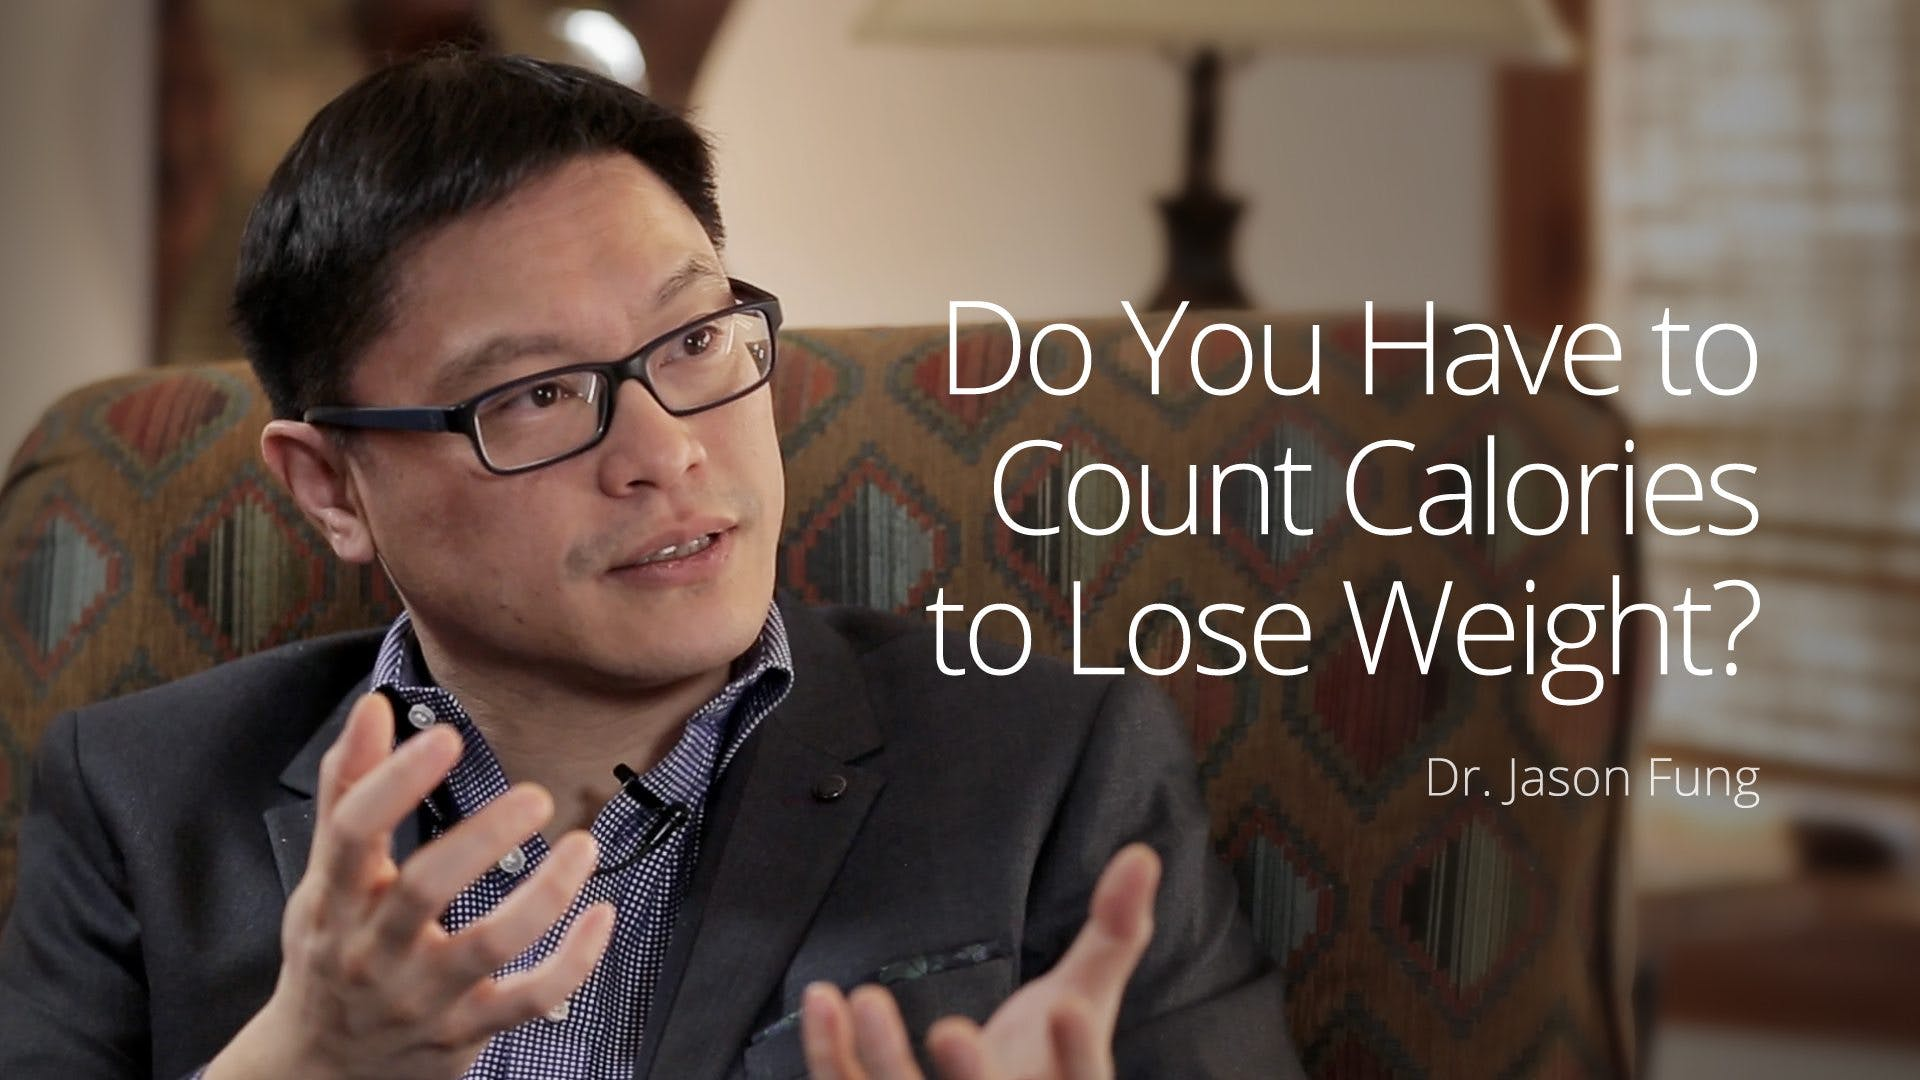 Do you have to count calories to lose weight?